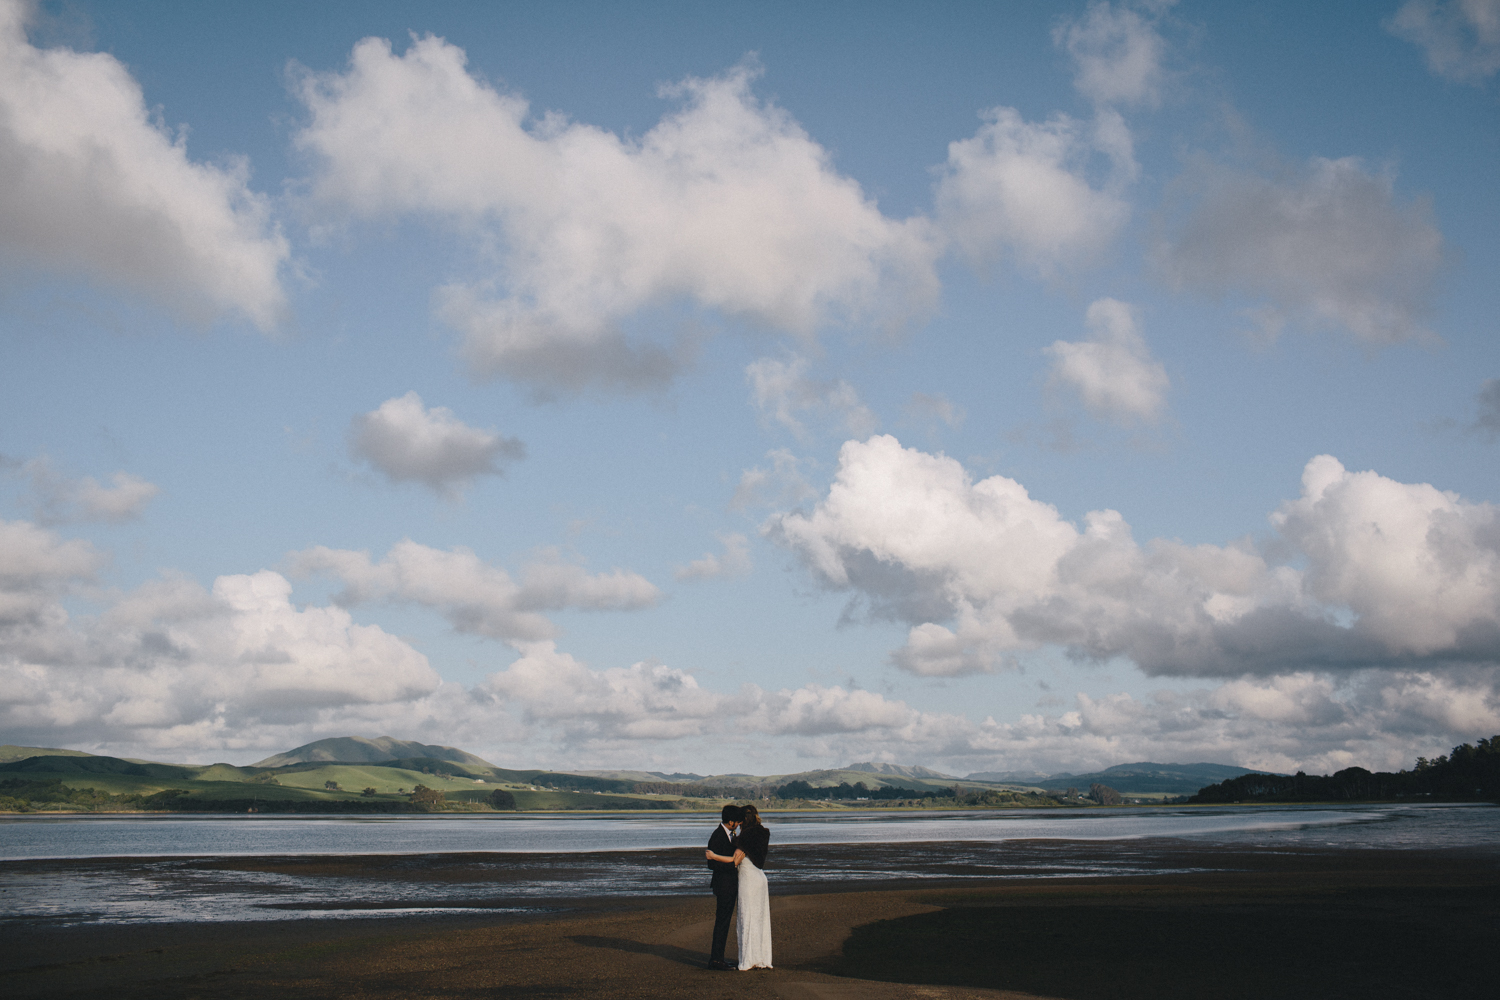 Point Reyes Inverness Wedding Photographer Rachelle Derouin-67.jpg